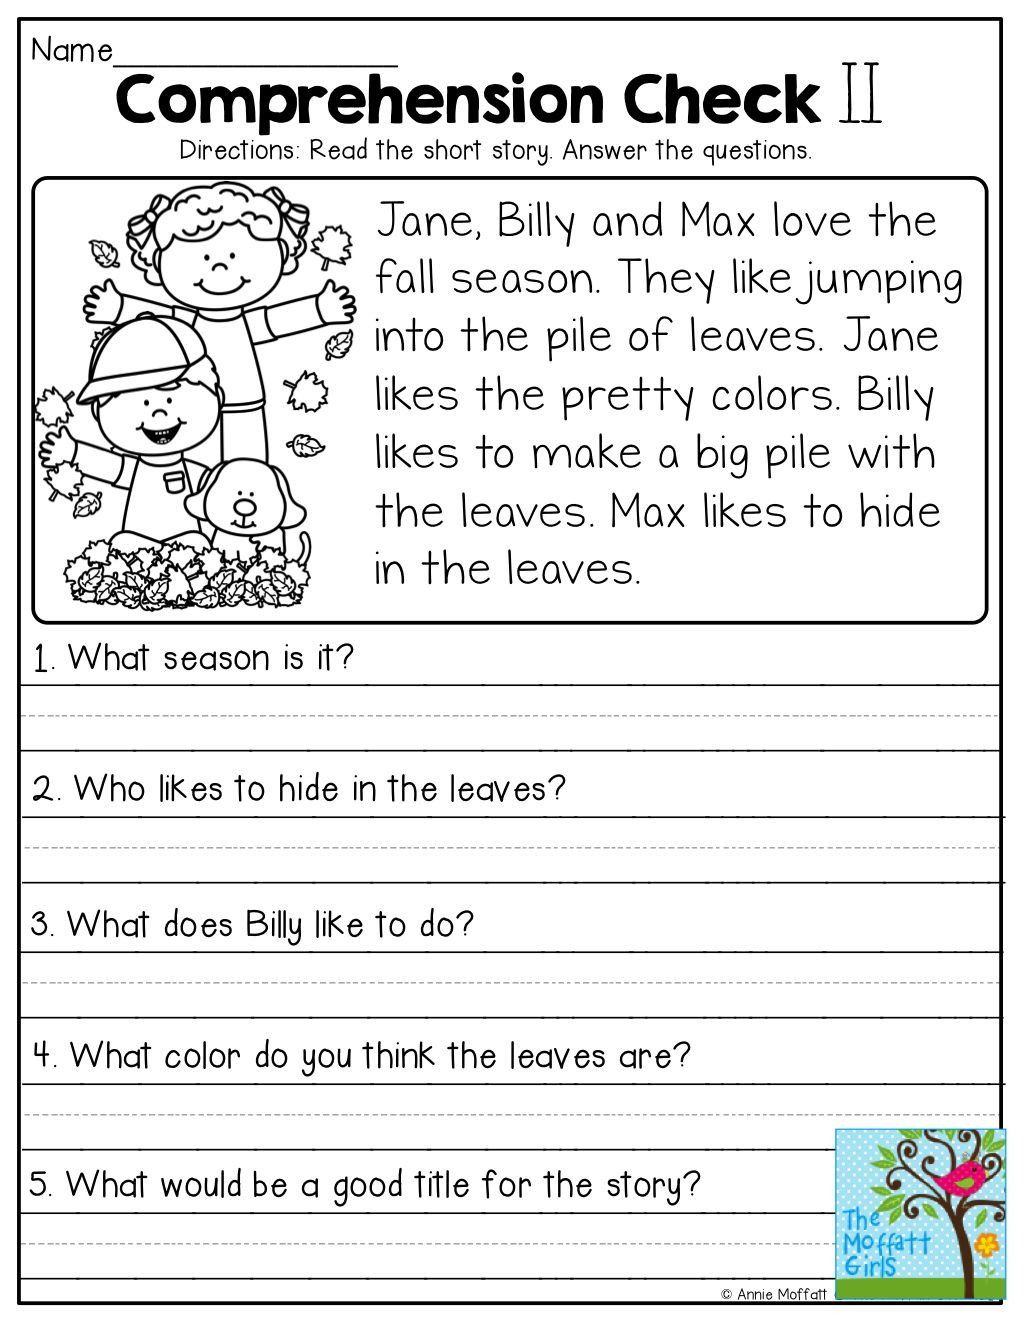 2nd Grade Comprehension Worksheet Image Result For October Reading Prehension Workshe Reading Comprehension Worksheets Reading Worksheets Reading Comprehension